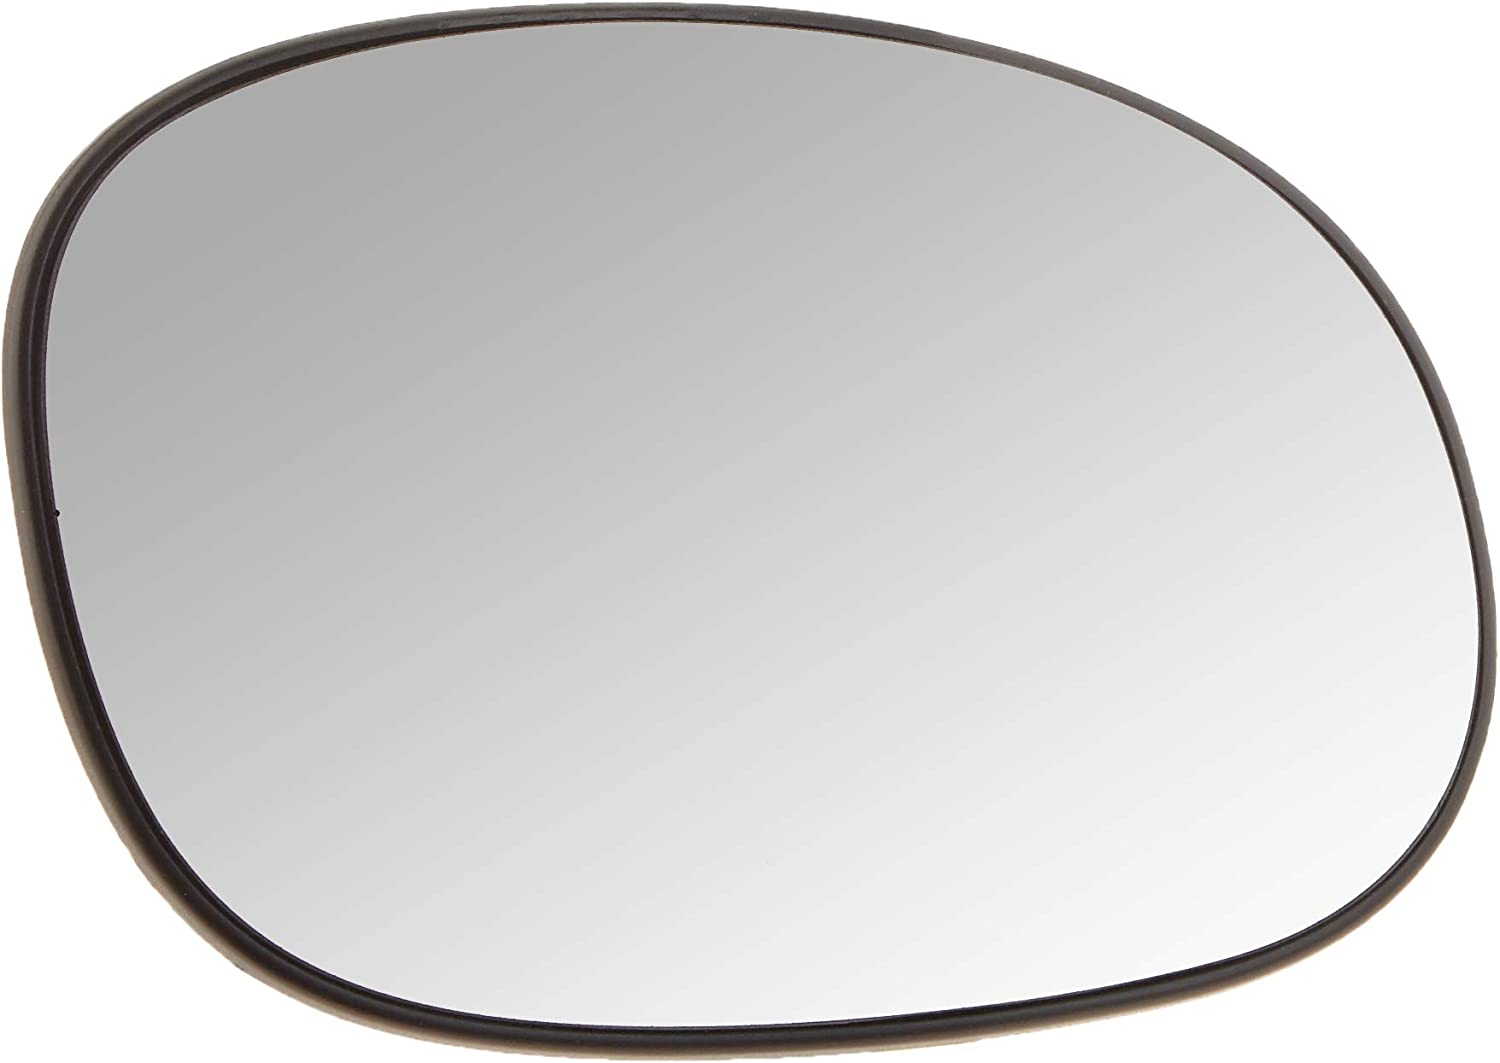 DX Cora 3310005 with Mirror Plate Chrome